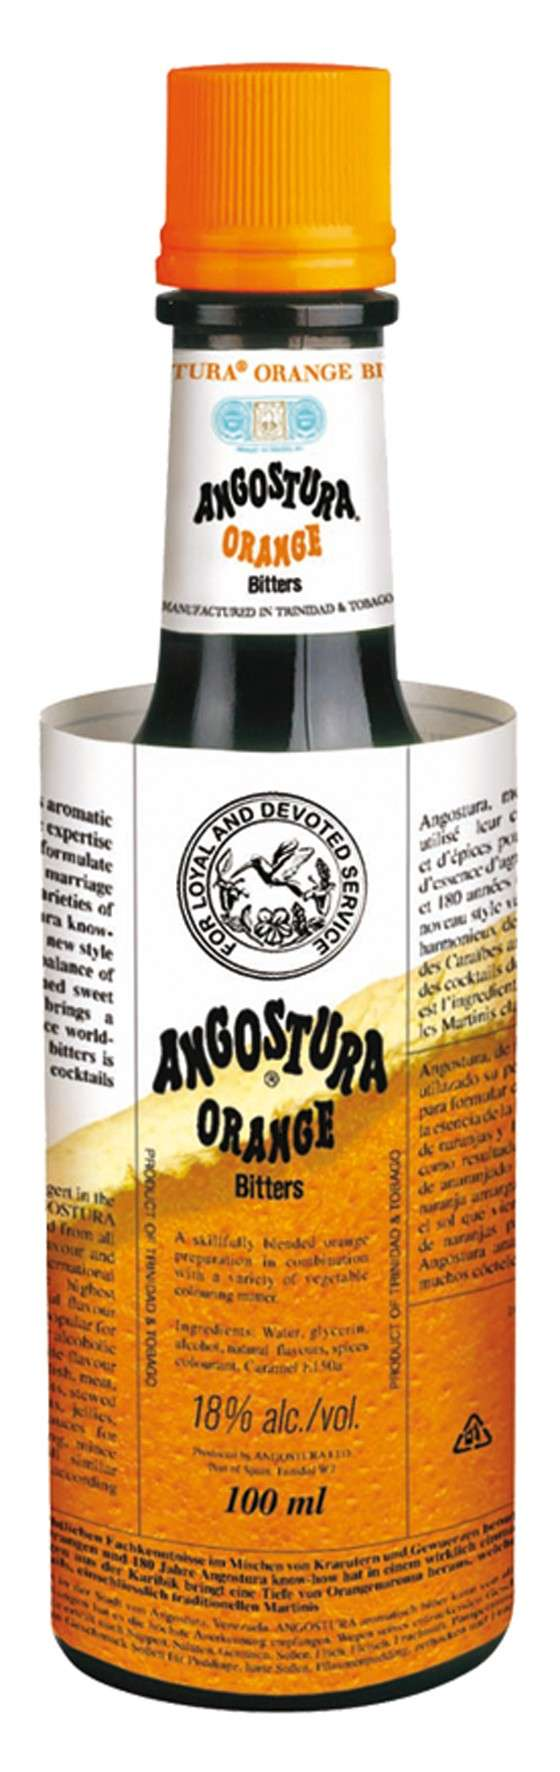 Angostura Orange Bitter